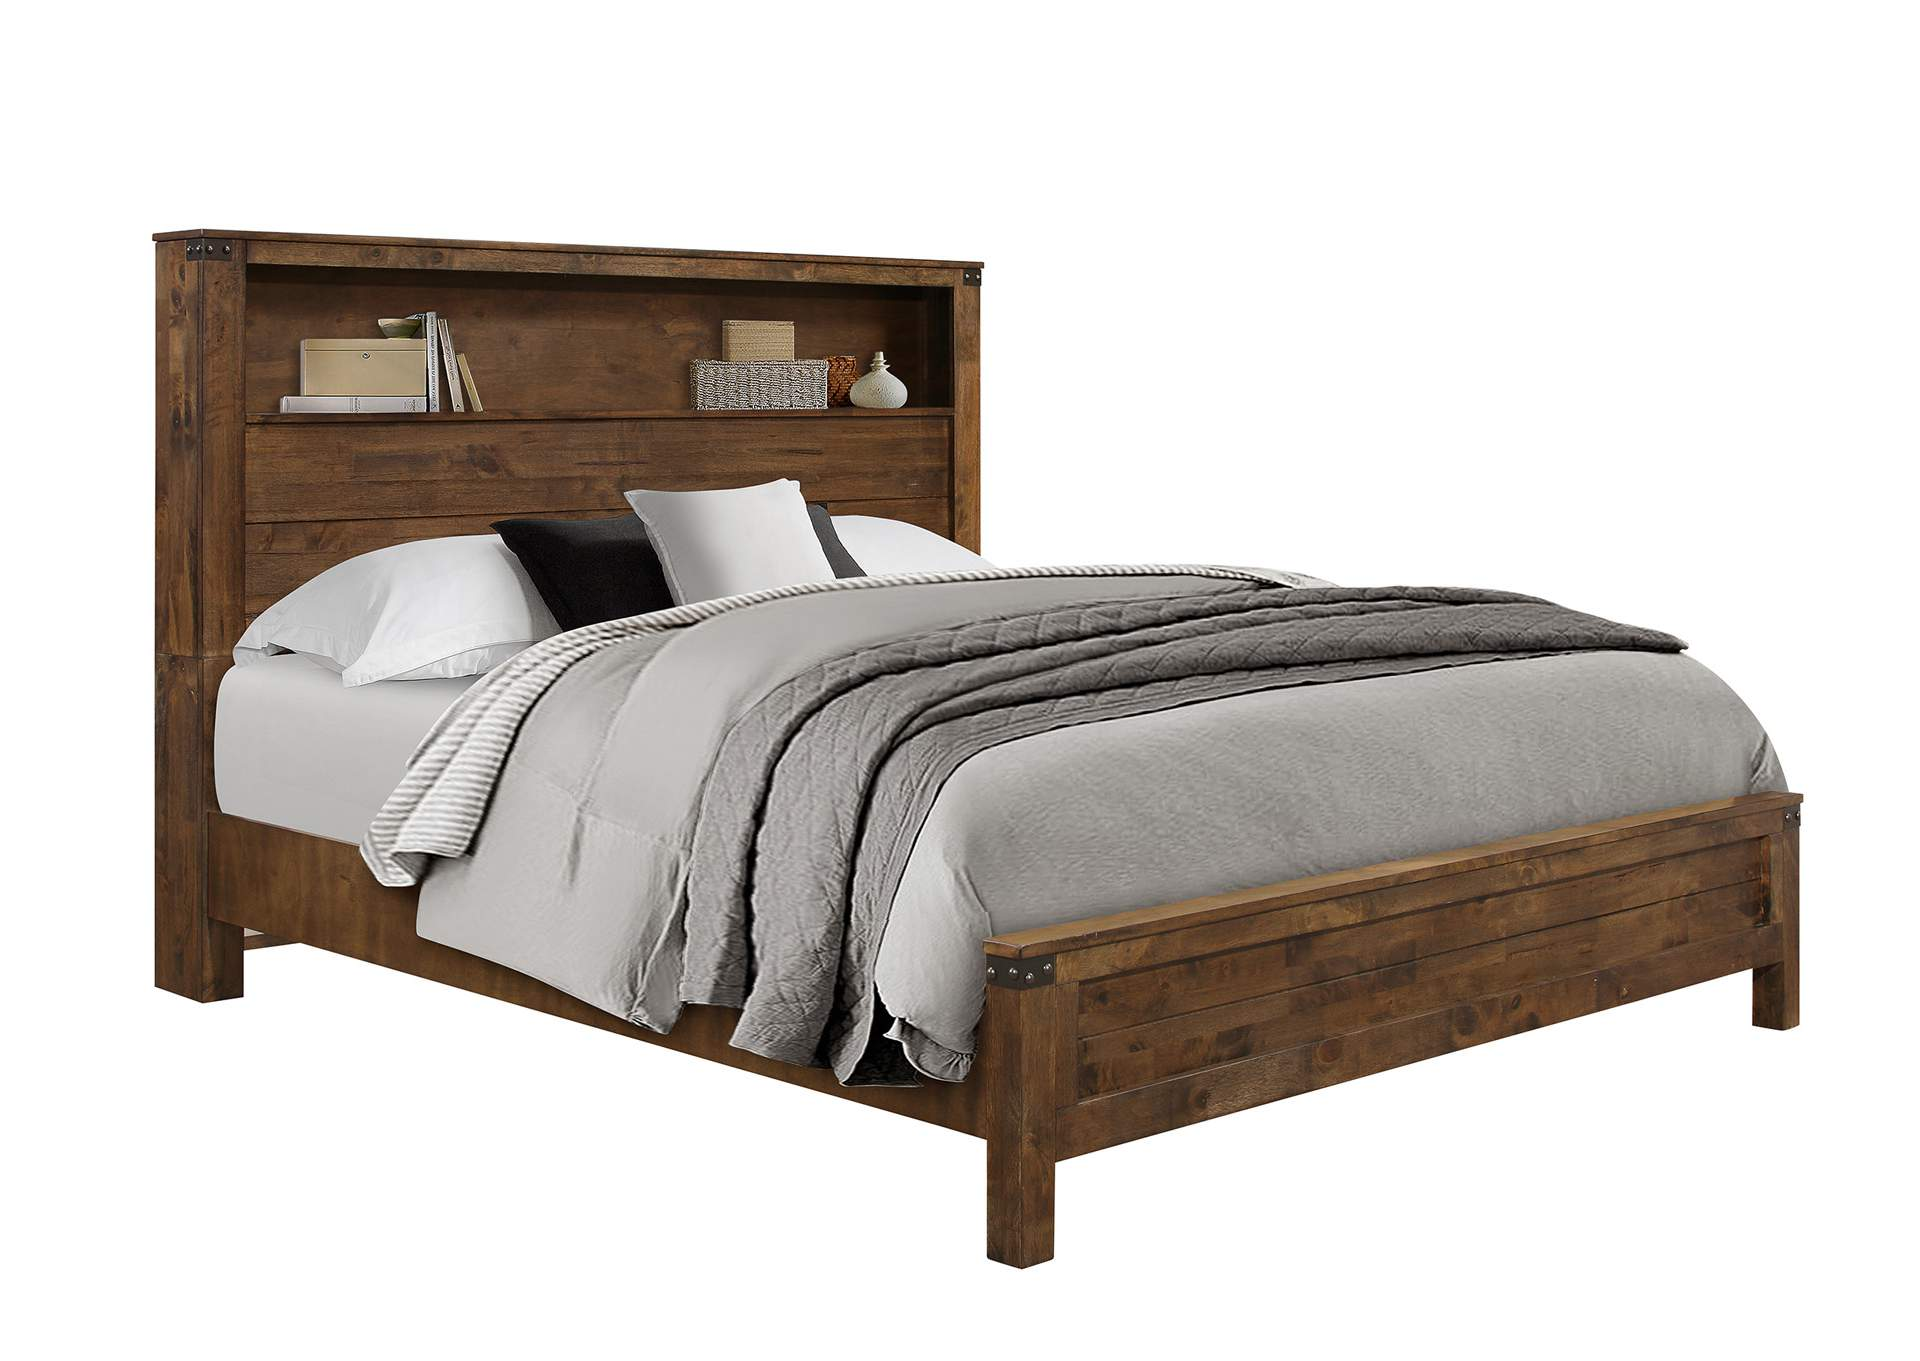 Victoria Queen Bed,Global Furniture USA